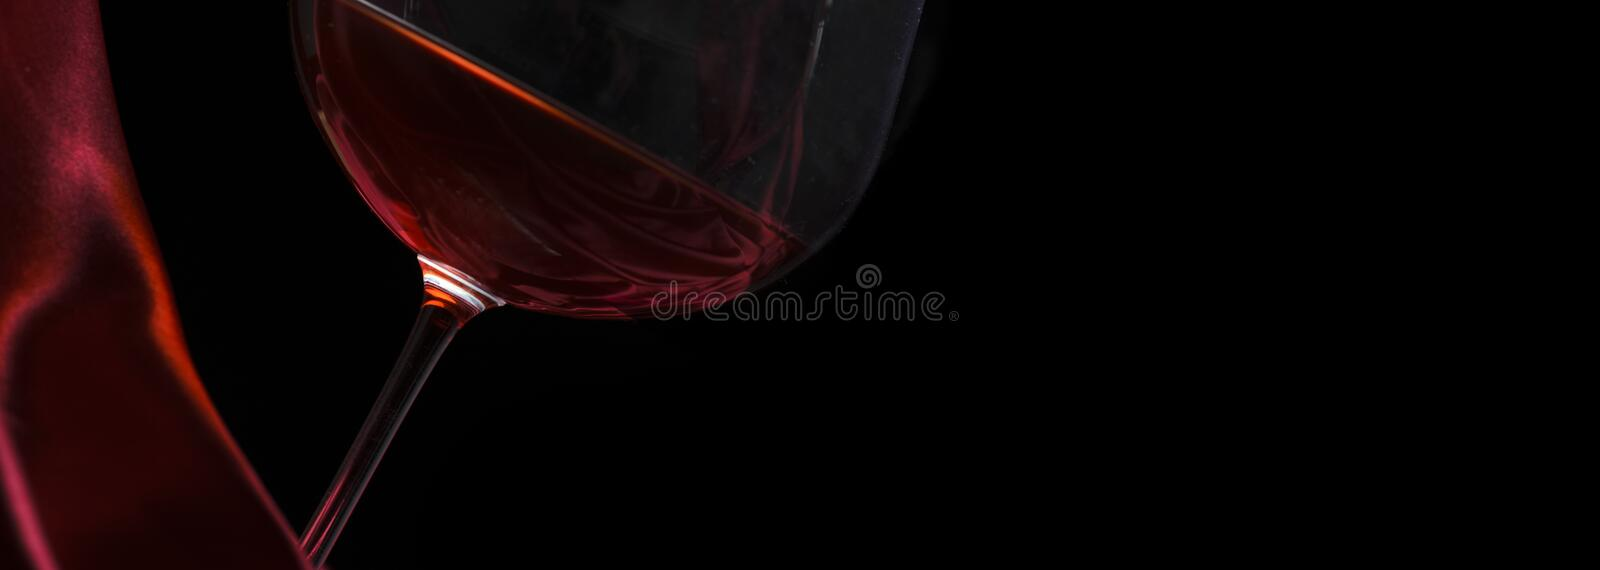 Glass of red wine on red silk against black background. Wine list design background stock image